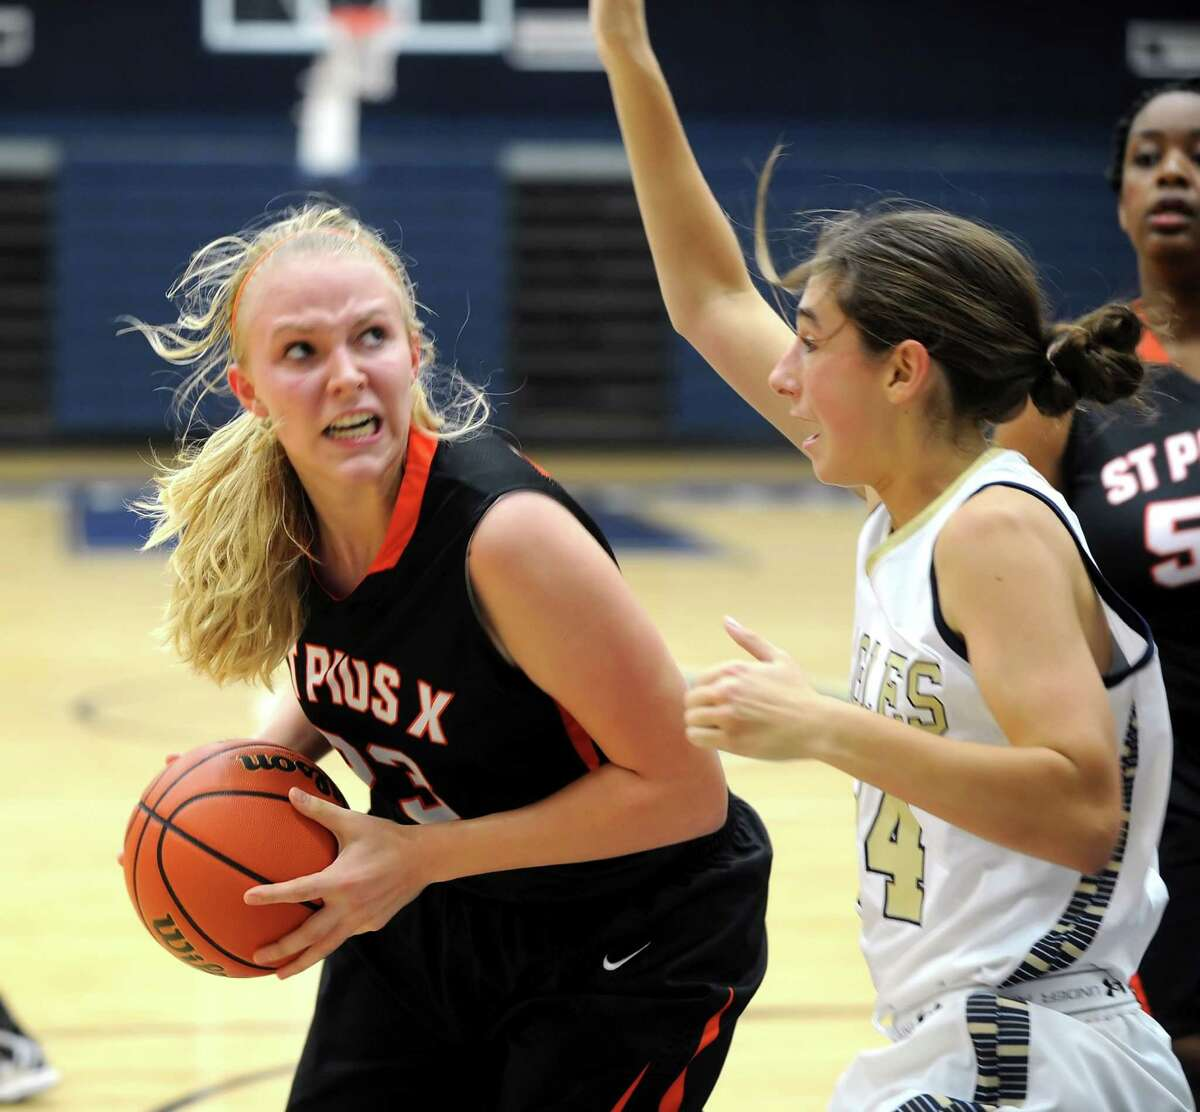 St. Pius visited second Baptist High School for a girls basketball game. Second Baptist won the game, 52-48. Left, St. Pius front court player Laura Daulton (23) is pressured under the basket by Second Baptist defender Taylor Kollmorgen (24).